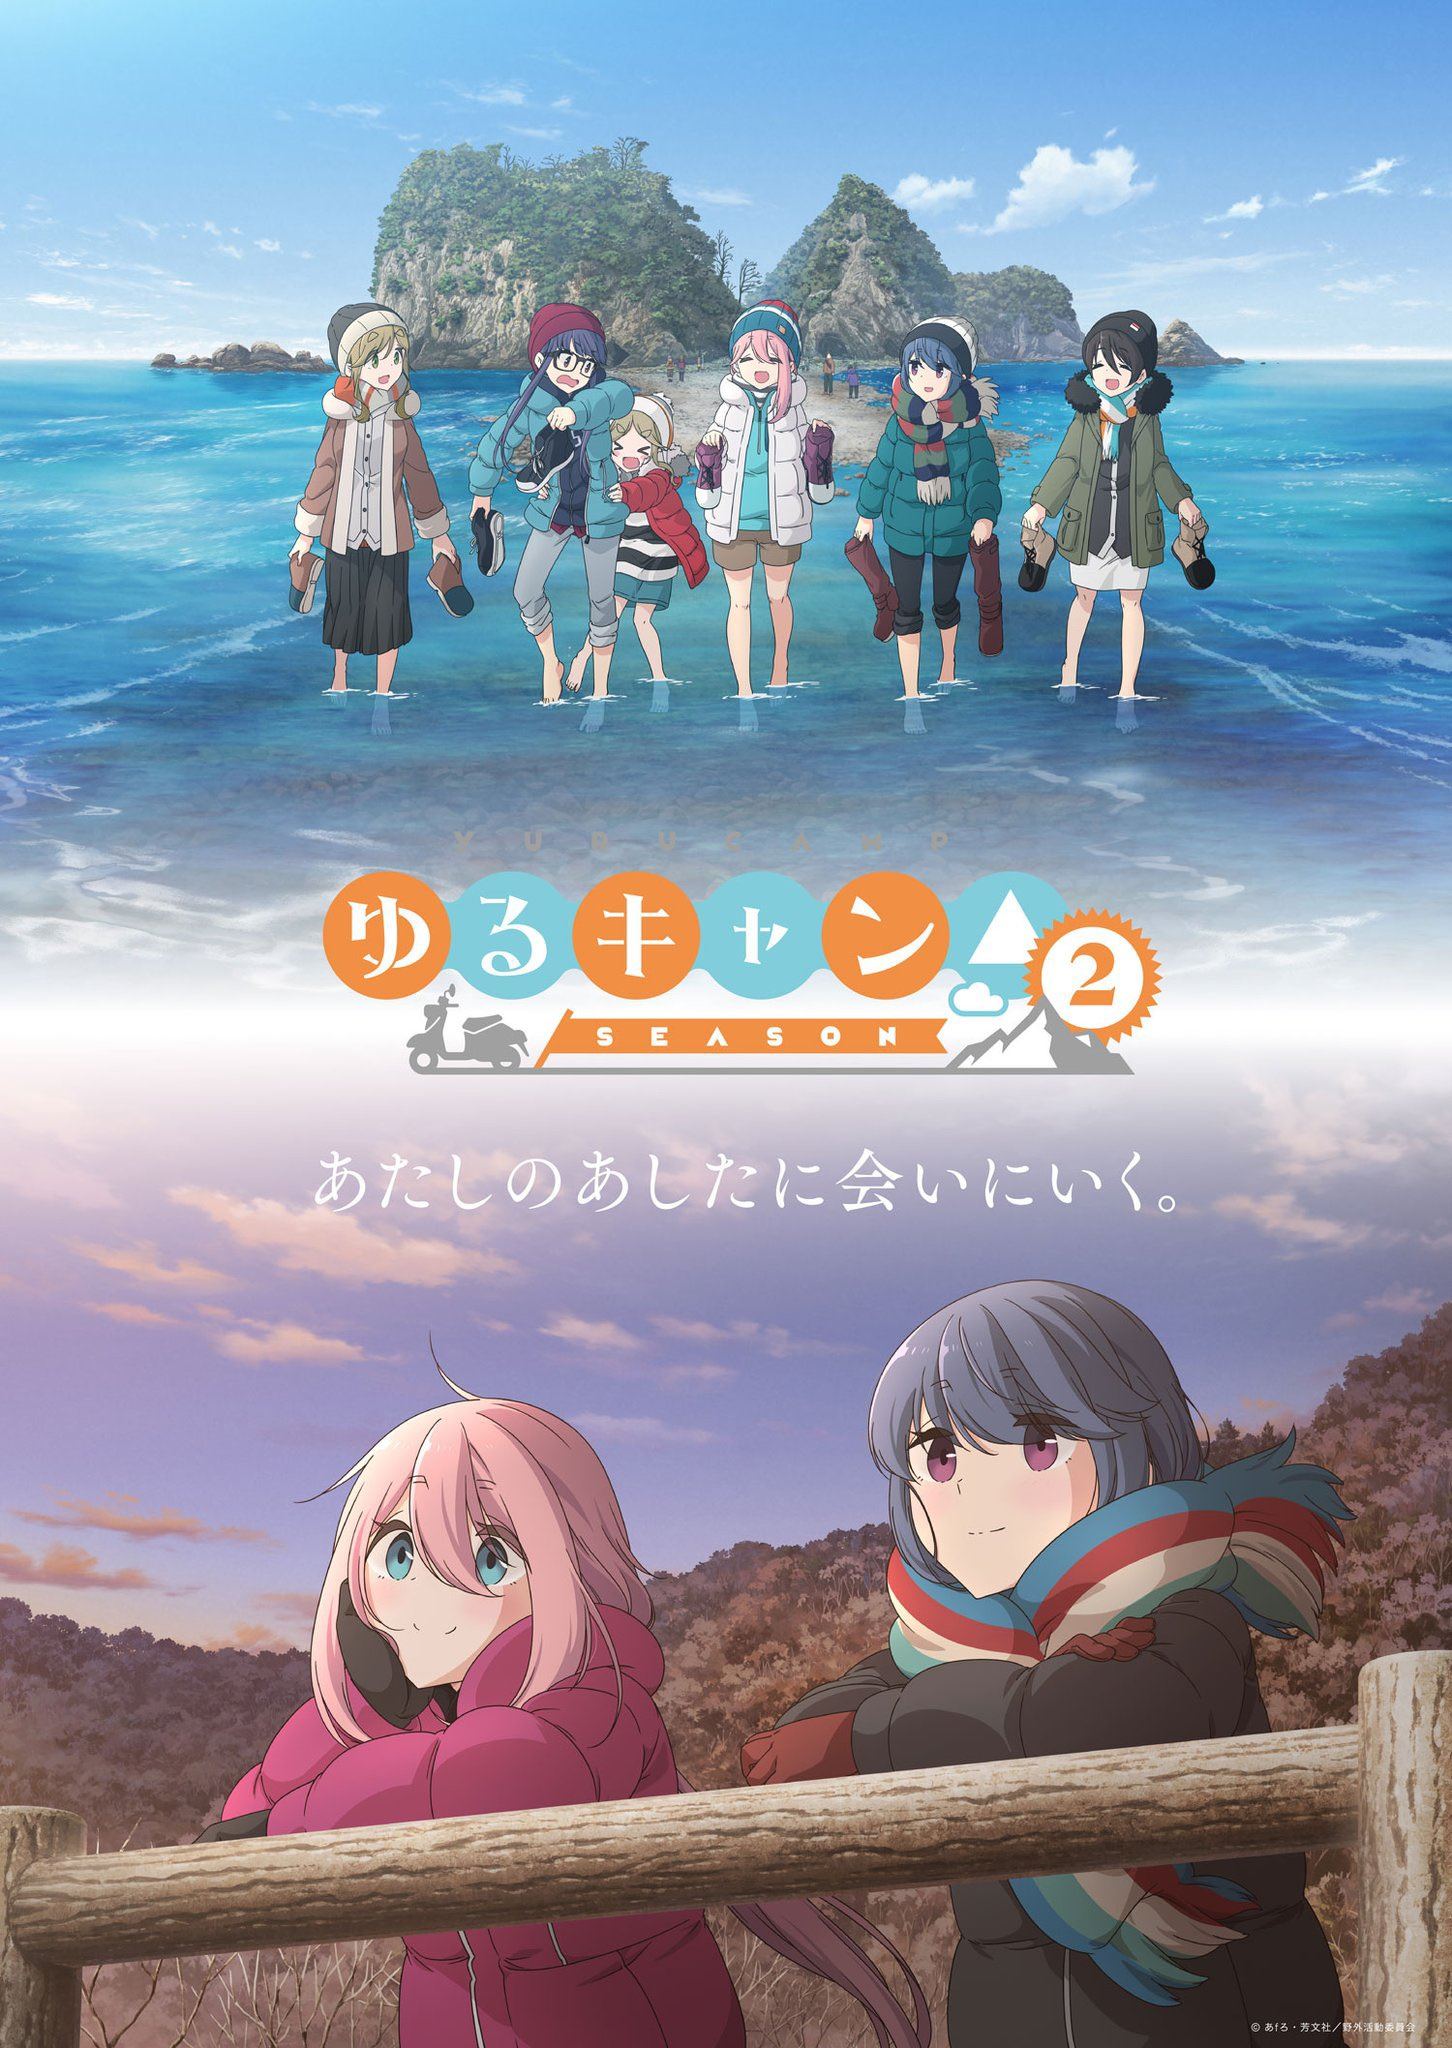 Yuru Camp △ Season 2 Batch Subtitle Indonesia [x265]